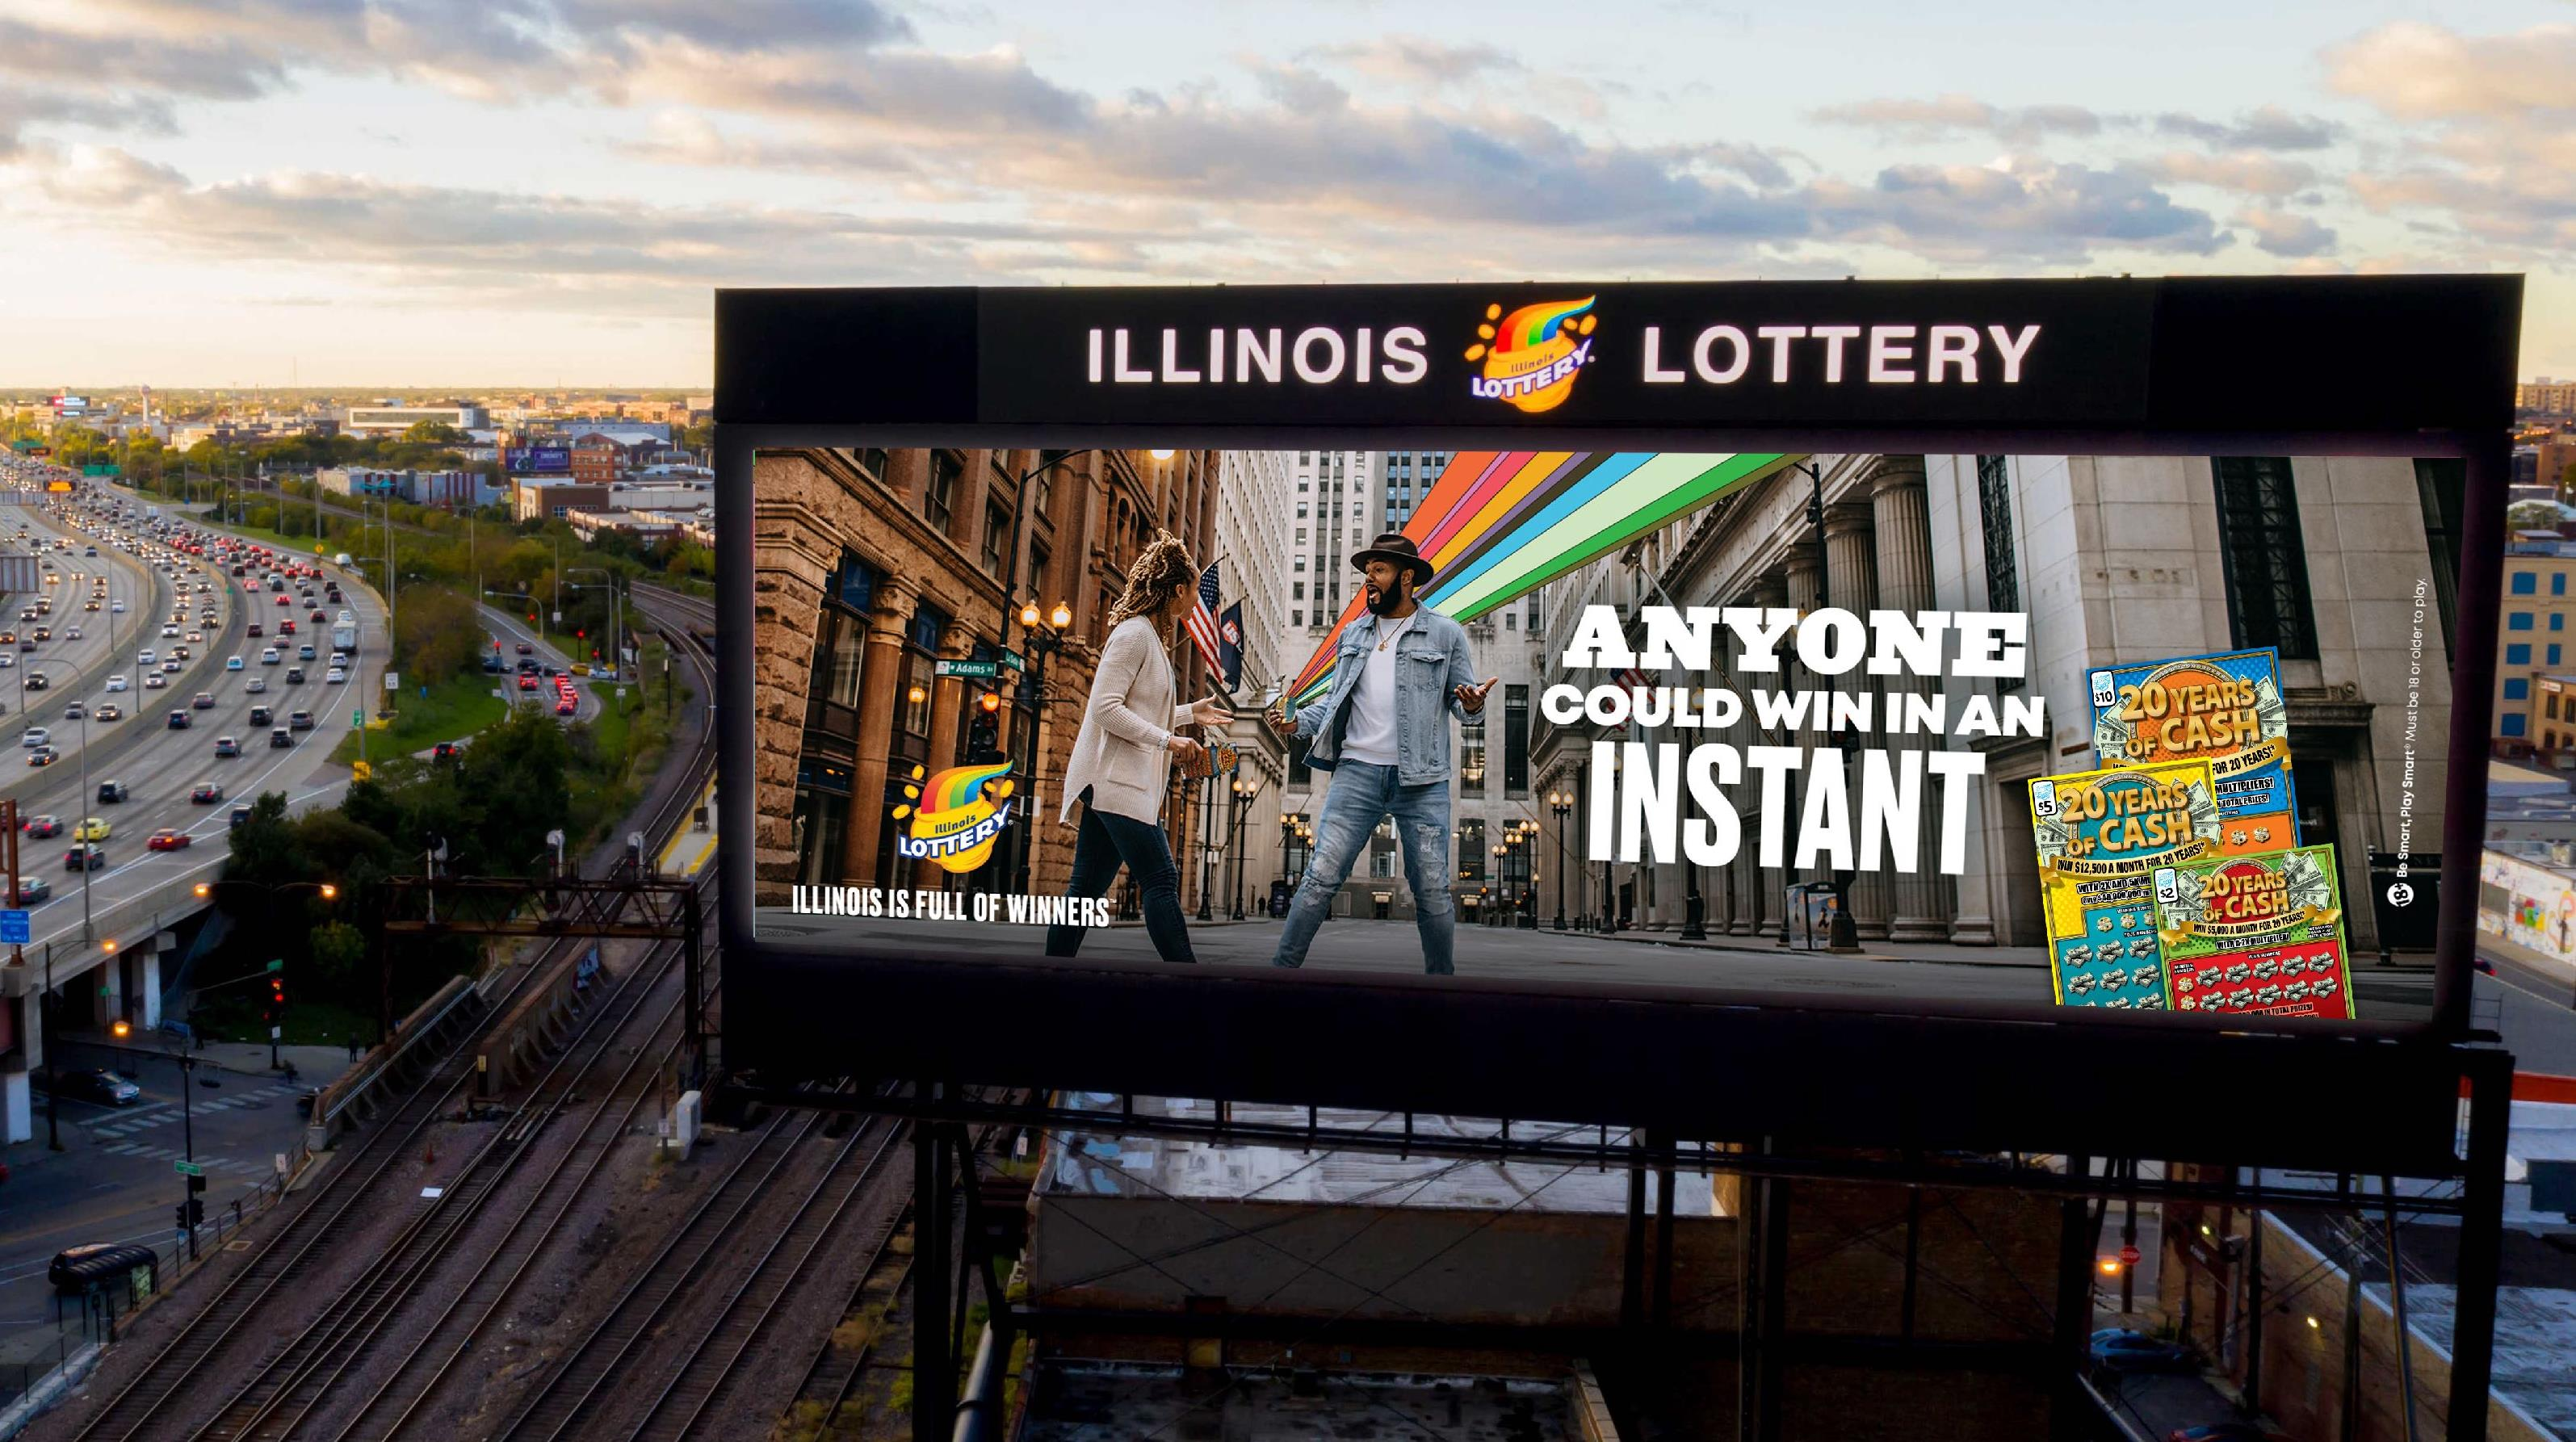 Illinois Lottery: Illinois is Full of Winners